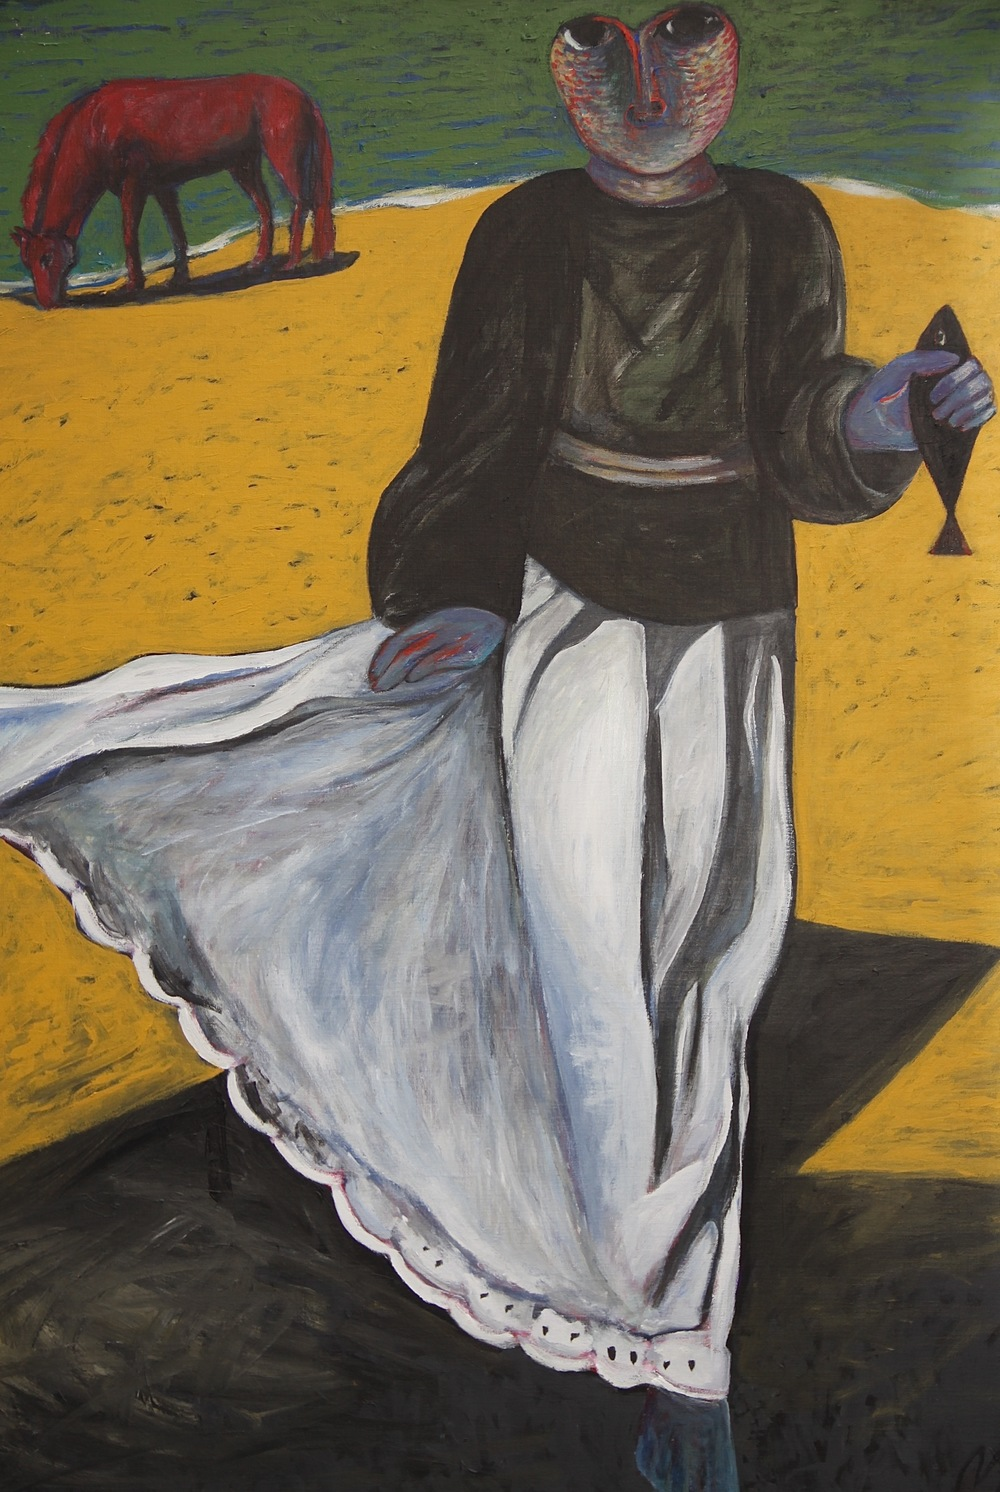 Ahmed Morsi, Black Fish, 1984, Acrylic on canvas, 152 x 132 cm.